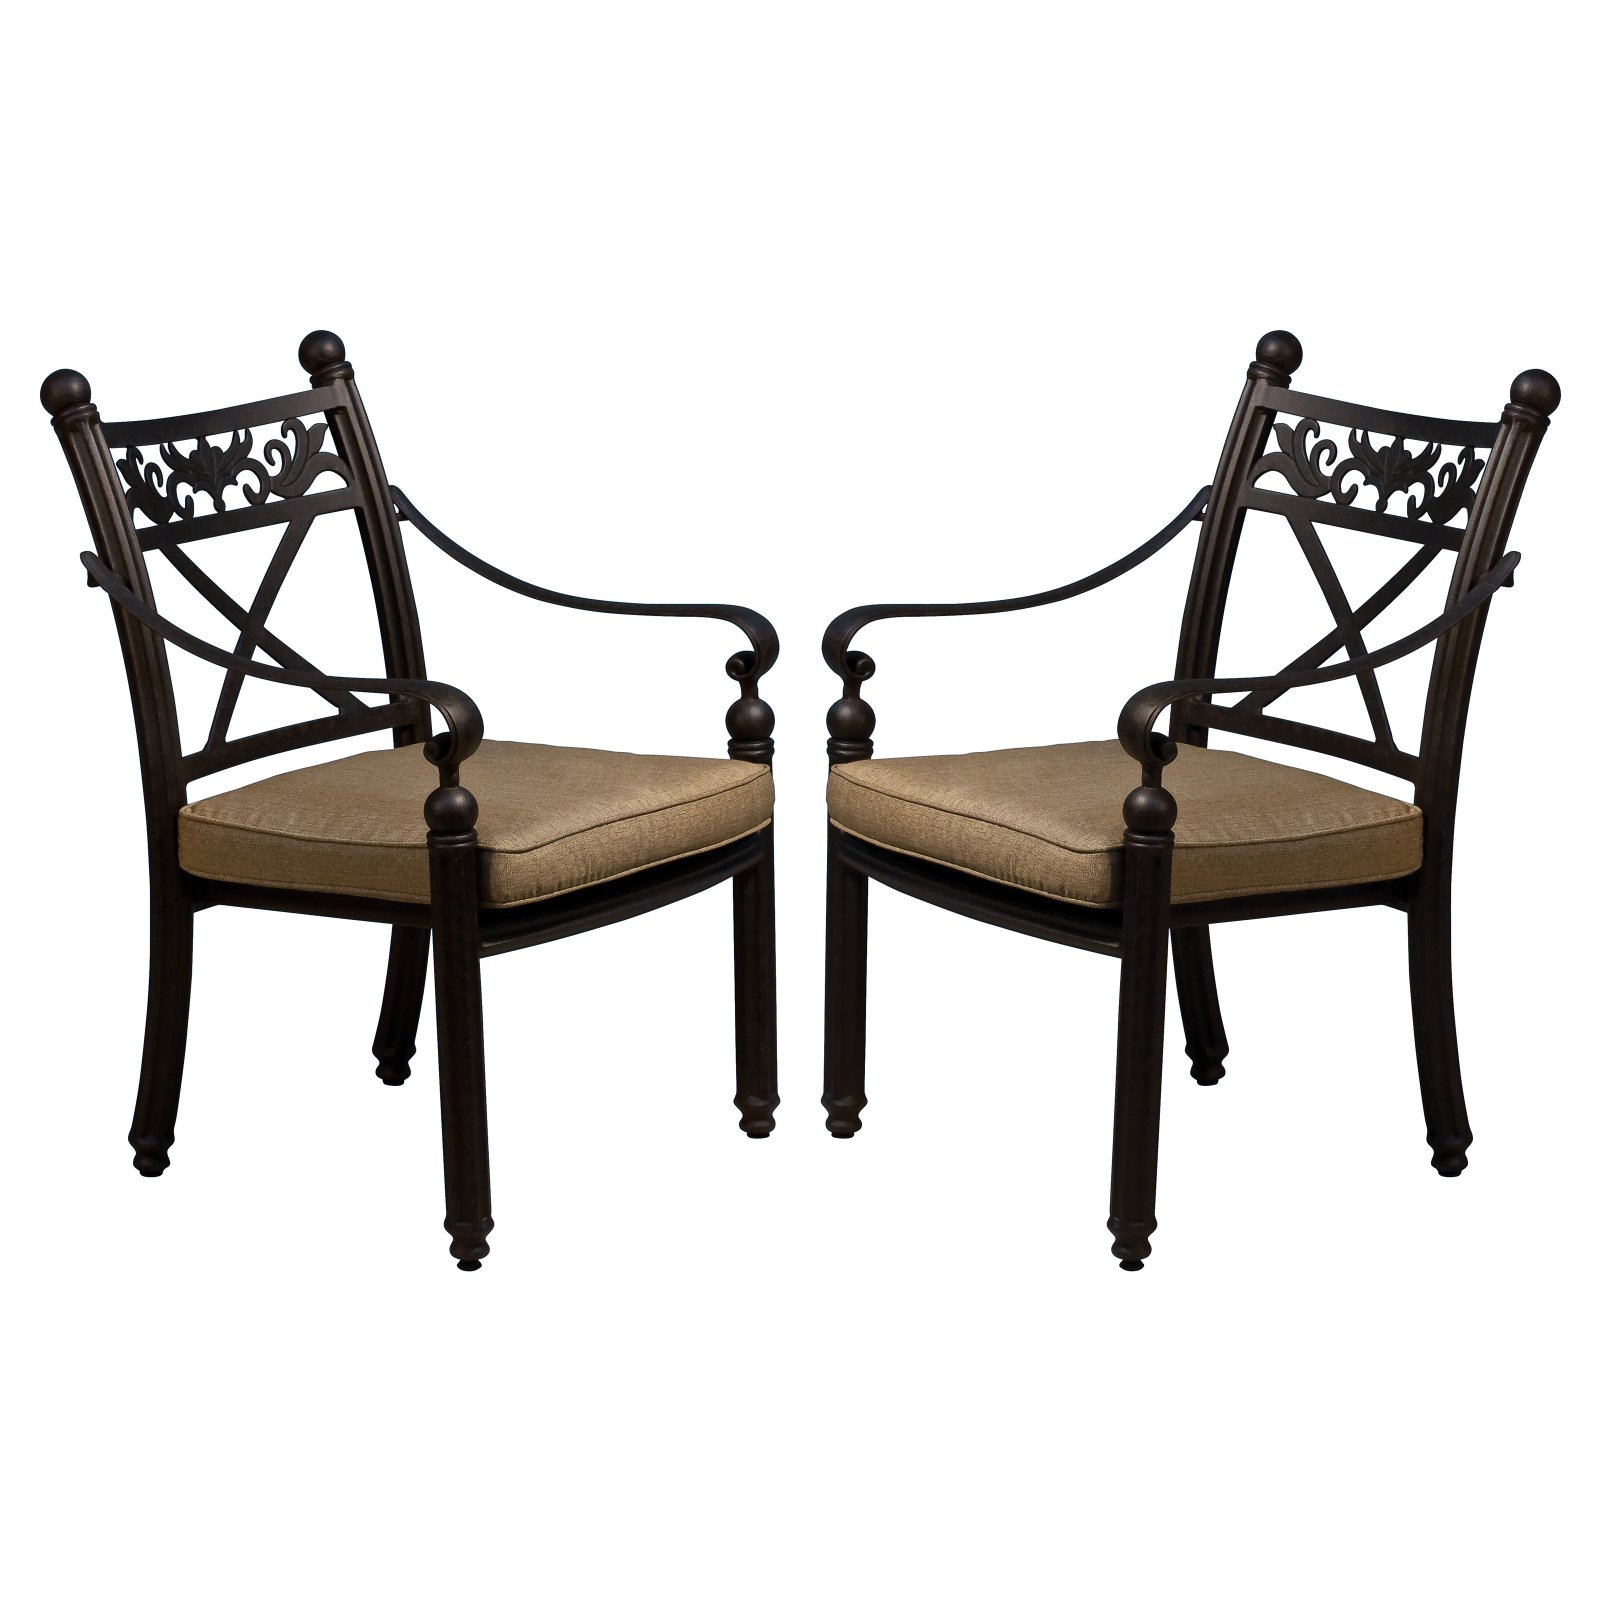 Click here to buy Paradise Cove Designs Balboa Aluminum Outdoor Dining Chair with Optional Cushions Set of 2.